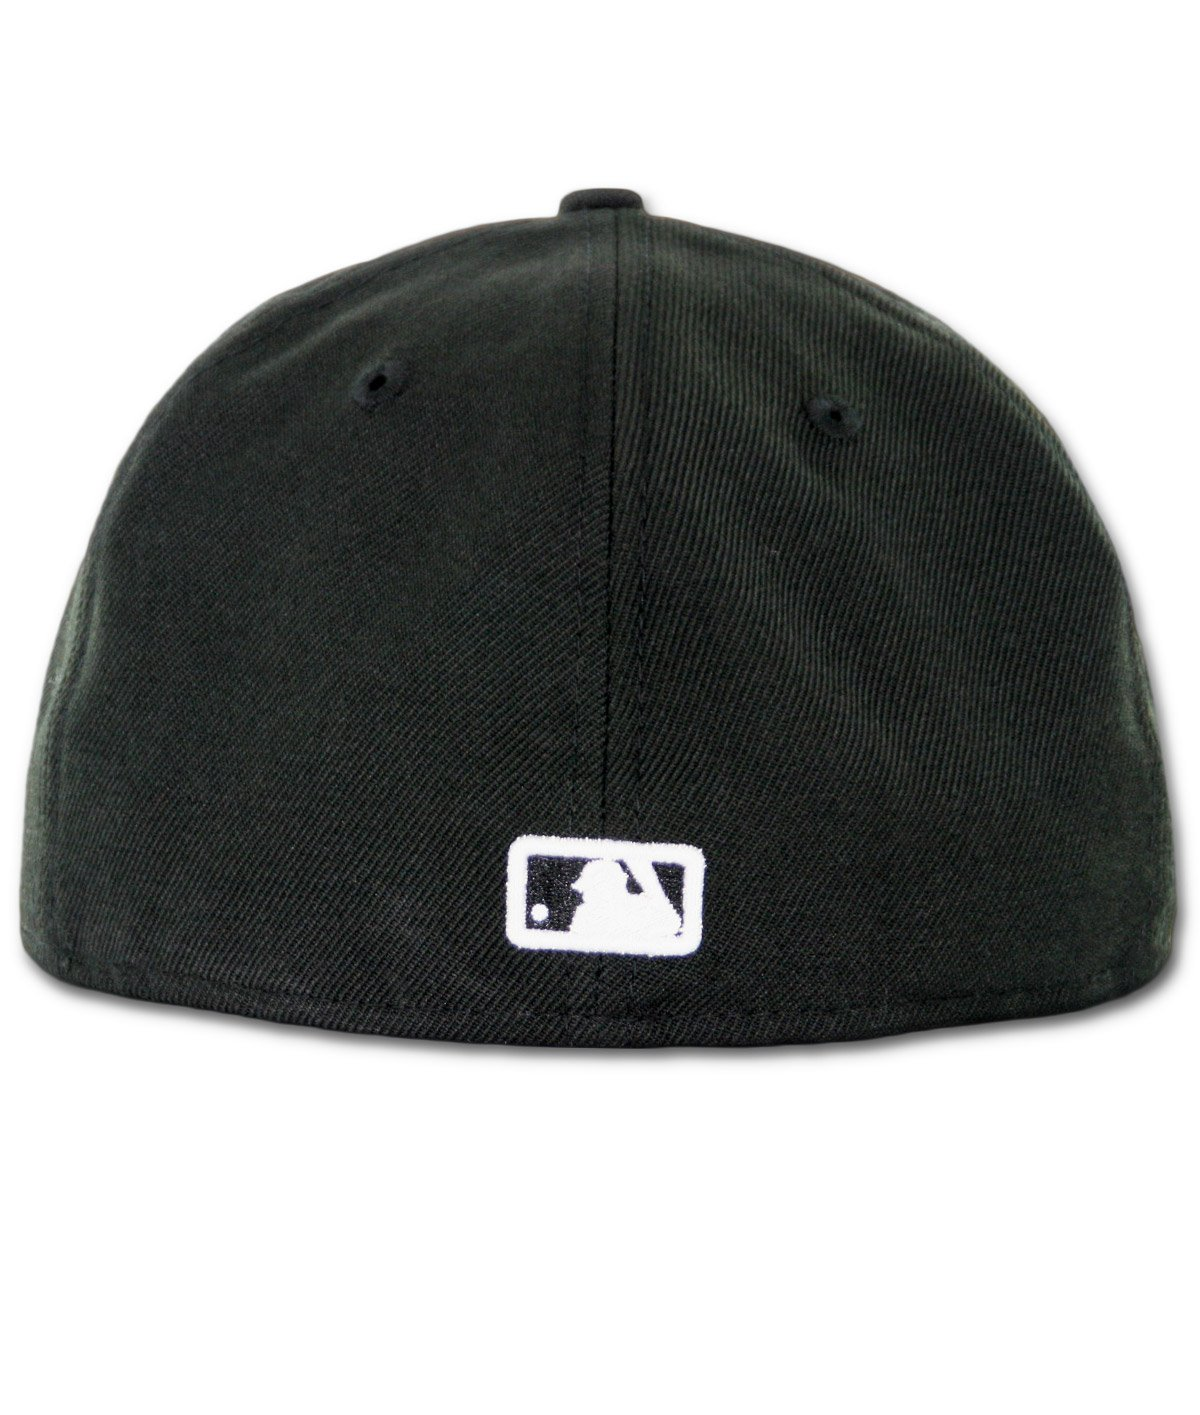 4180abac537 Amazon.com   New Era MLB Los Angeles Dodgers Black with White 59FIFTY Fitted  Cap   Sports   Outdoors